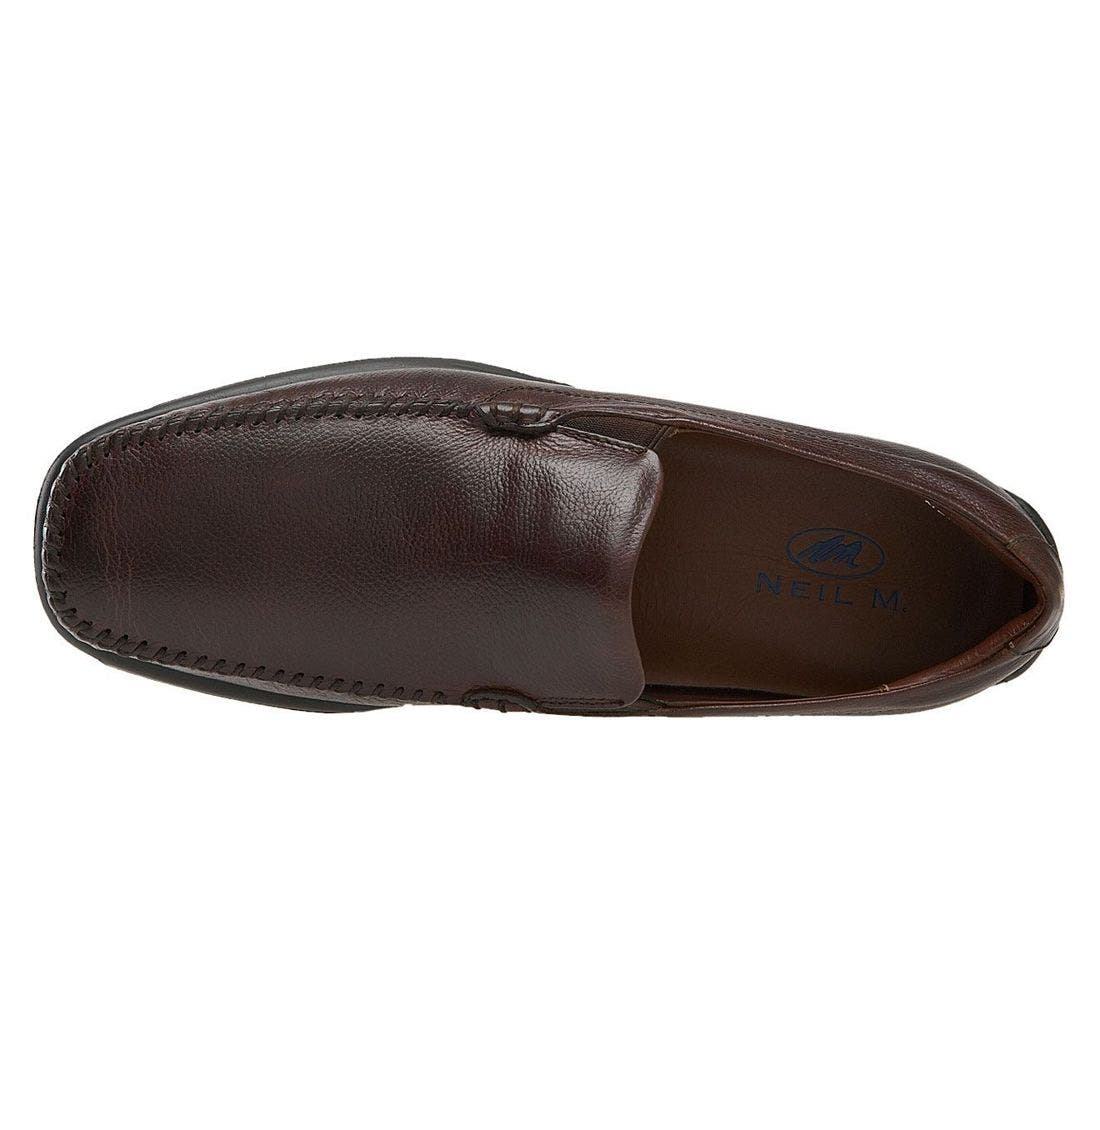 'Rome' Loafer,                             Alternate thumbnail 2, color,                             WAL